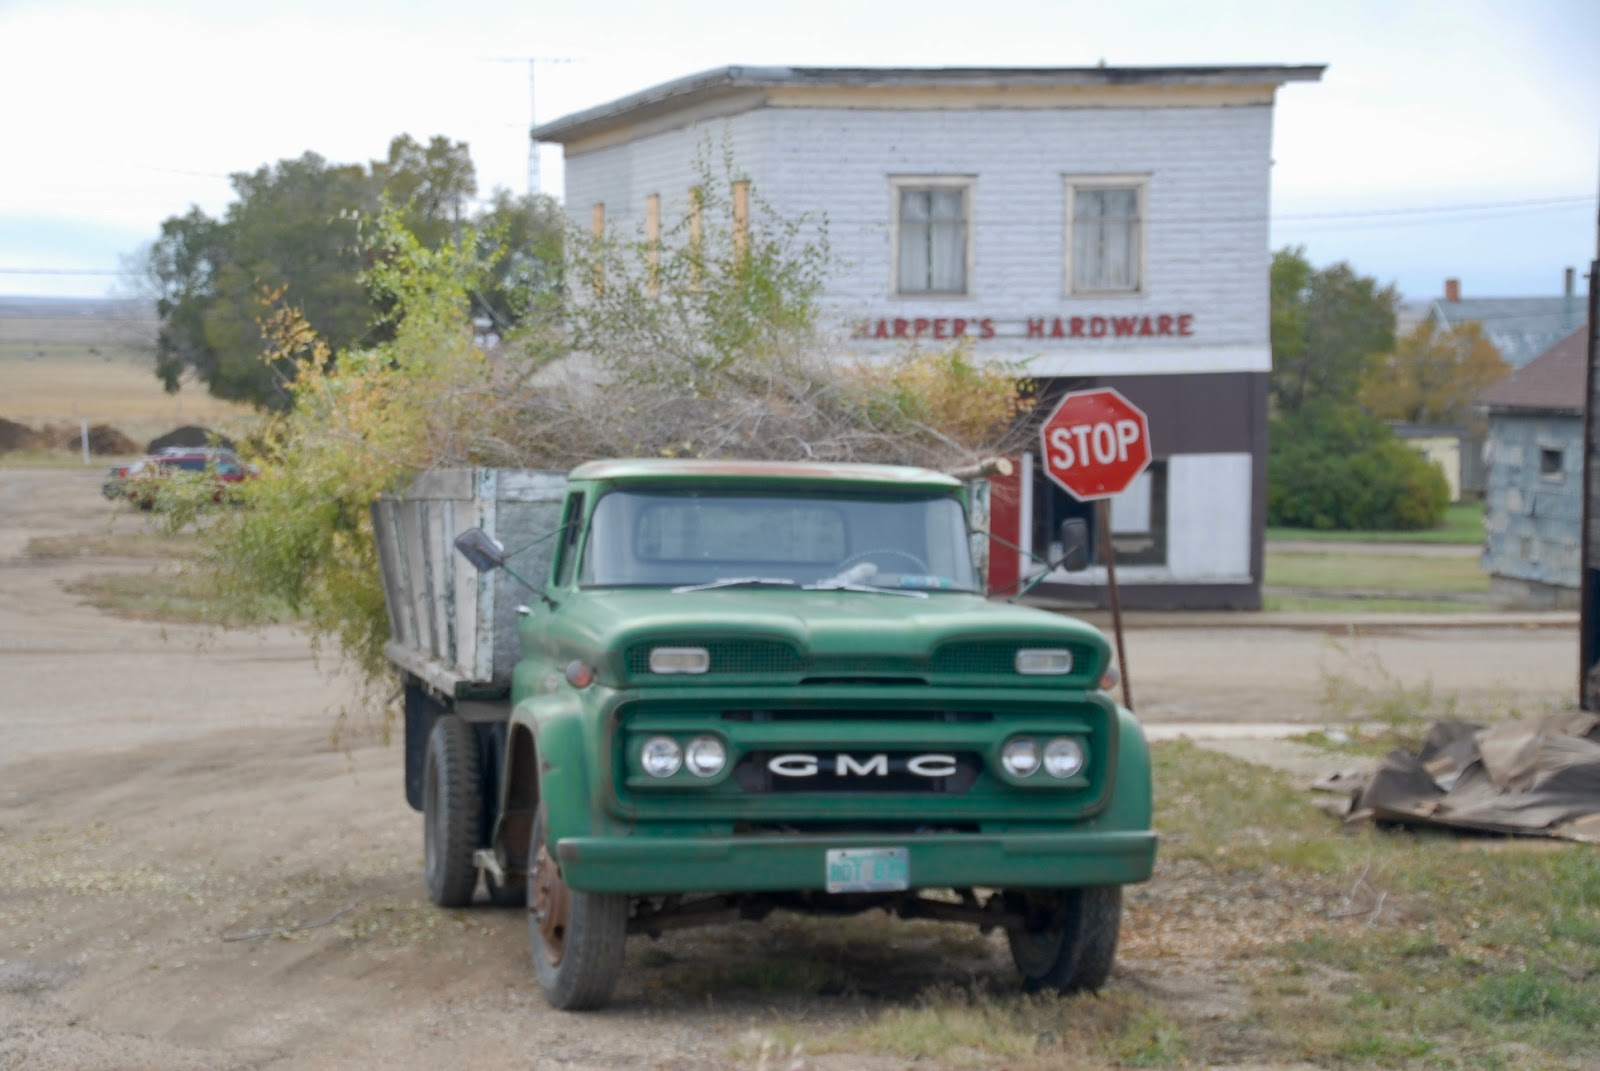 small resolution of 1962 gmc 5000 from alex emond this green truck was parked in kincaid saskatchewan mid chore impressive front on this machine all business